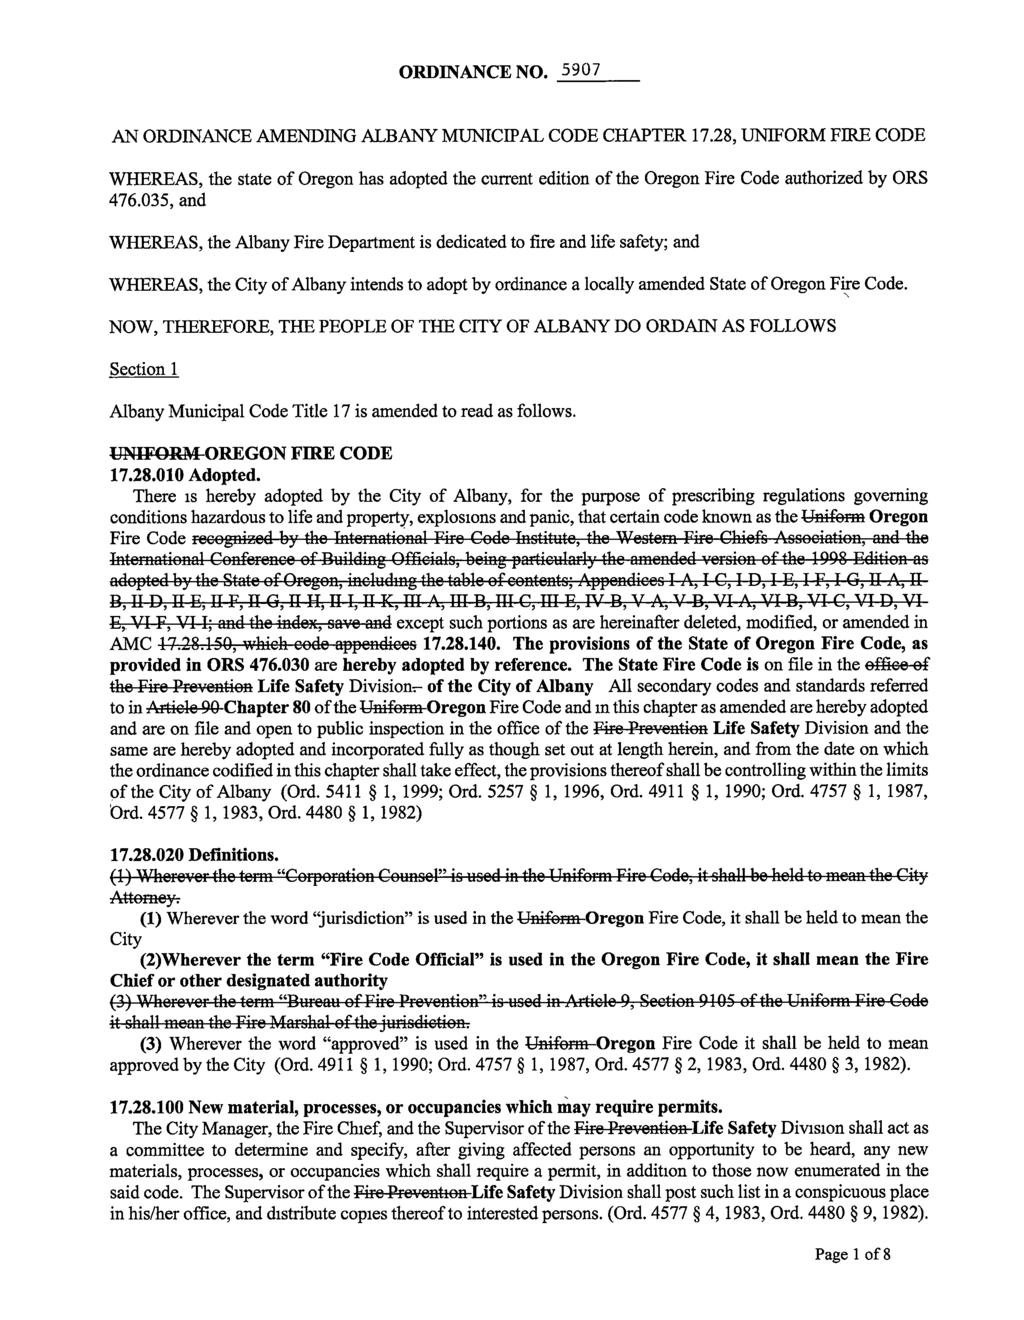 ORDINANCE NO, 5907 AN ORDINANCE AMENDING ALBANY MUNICIPAL CODE CHAPTER 17.